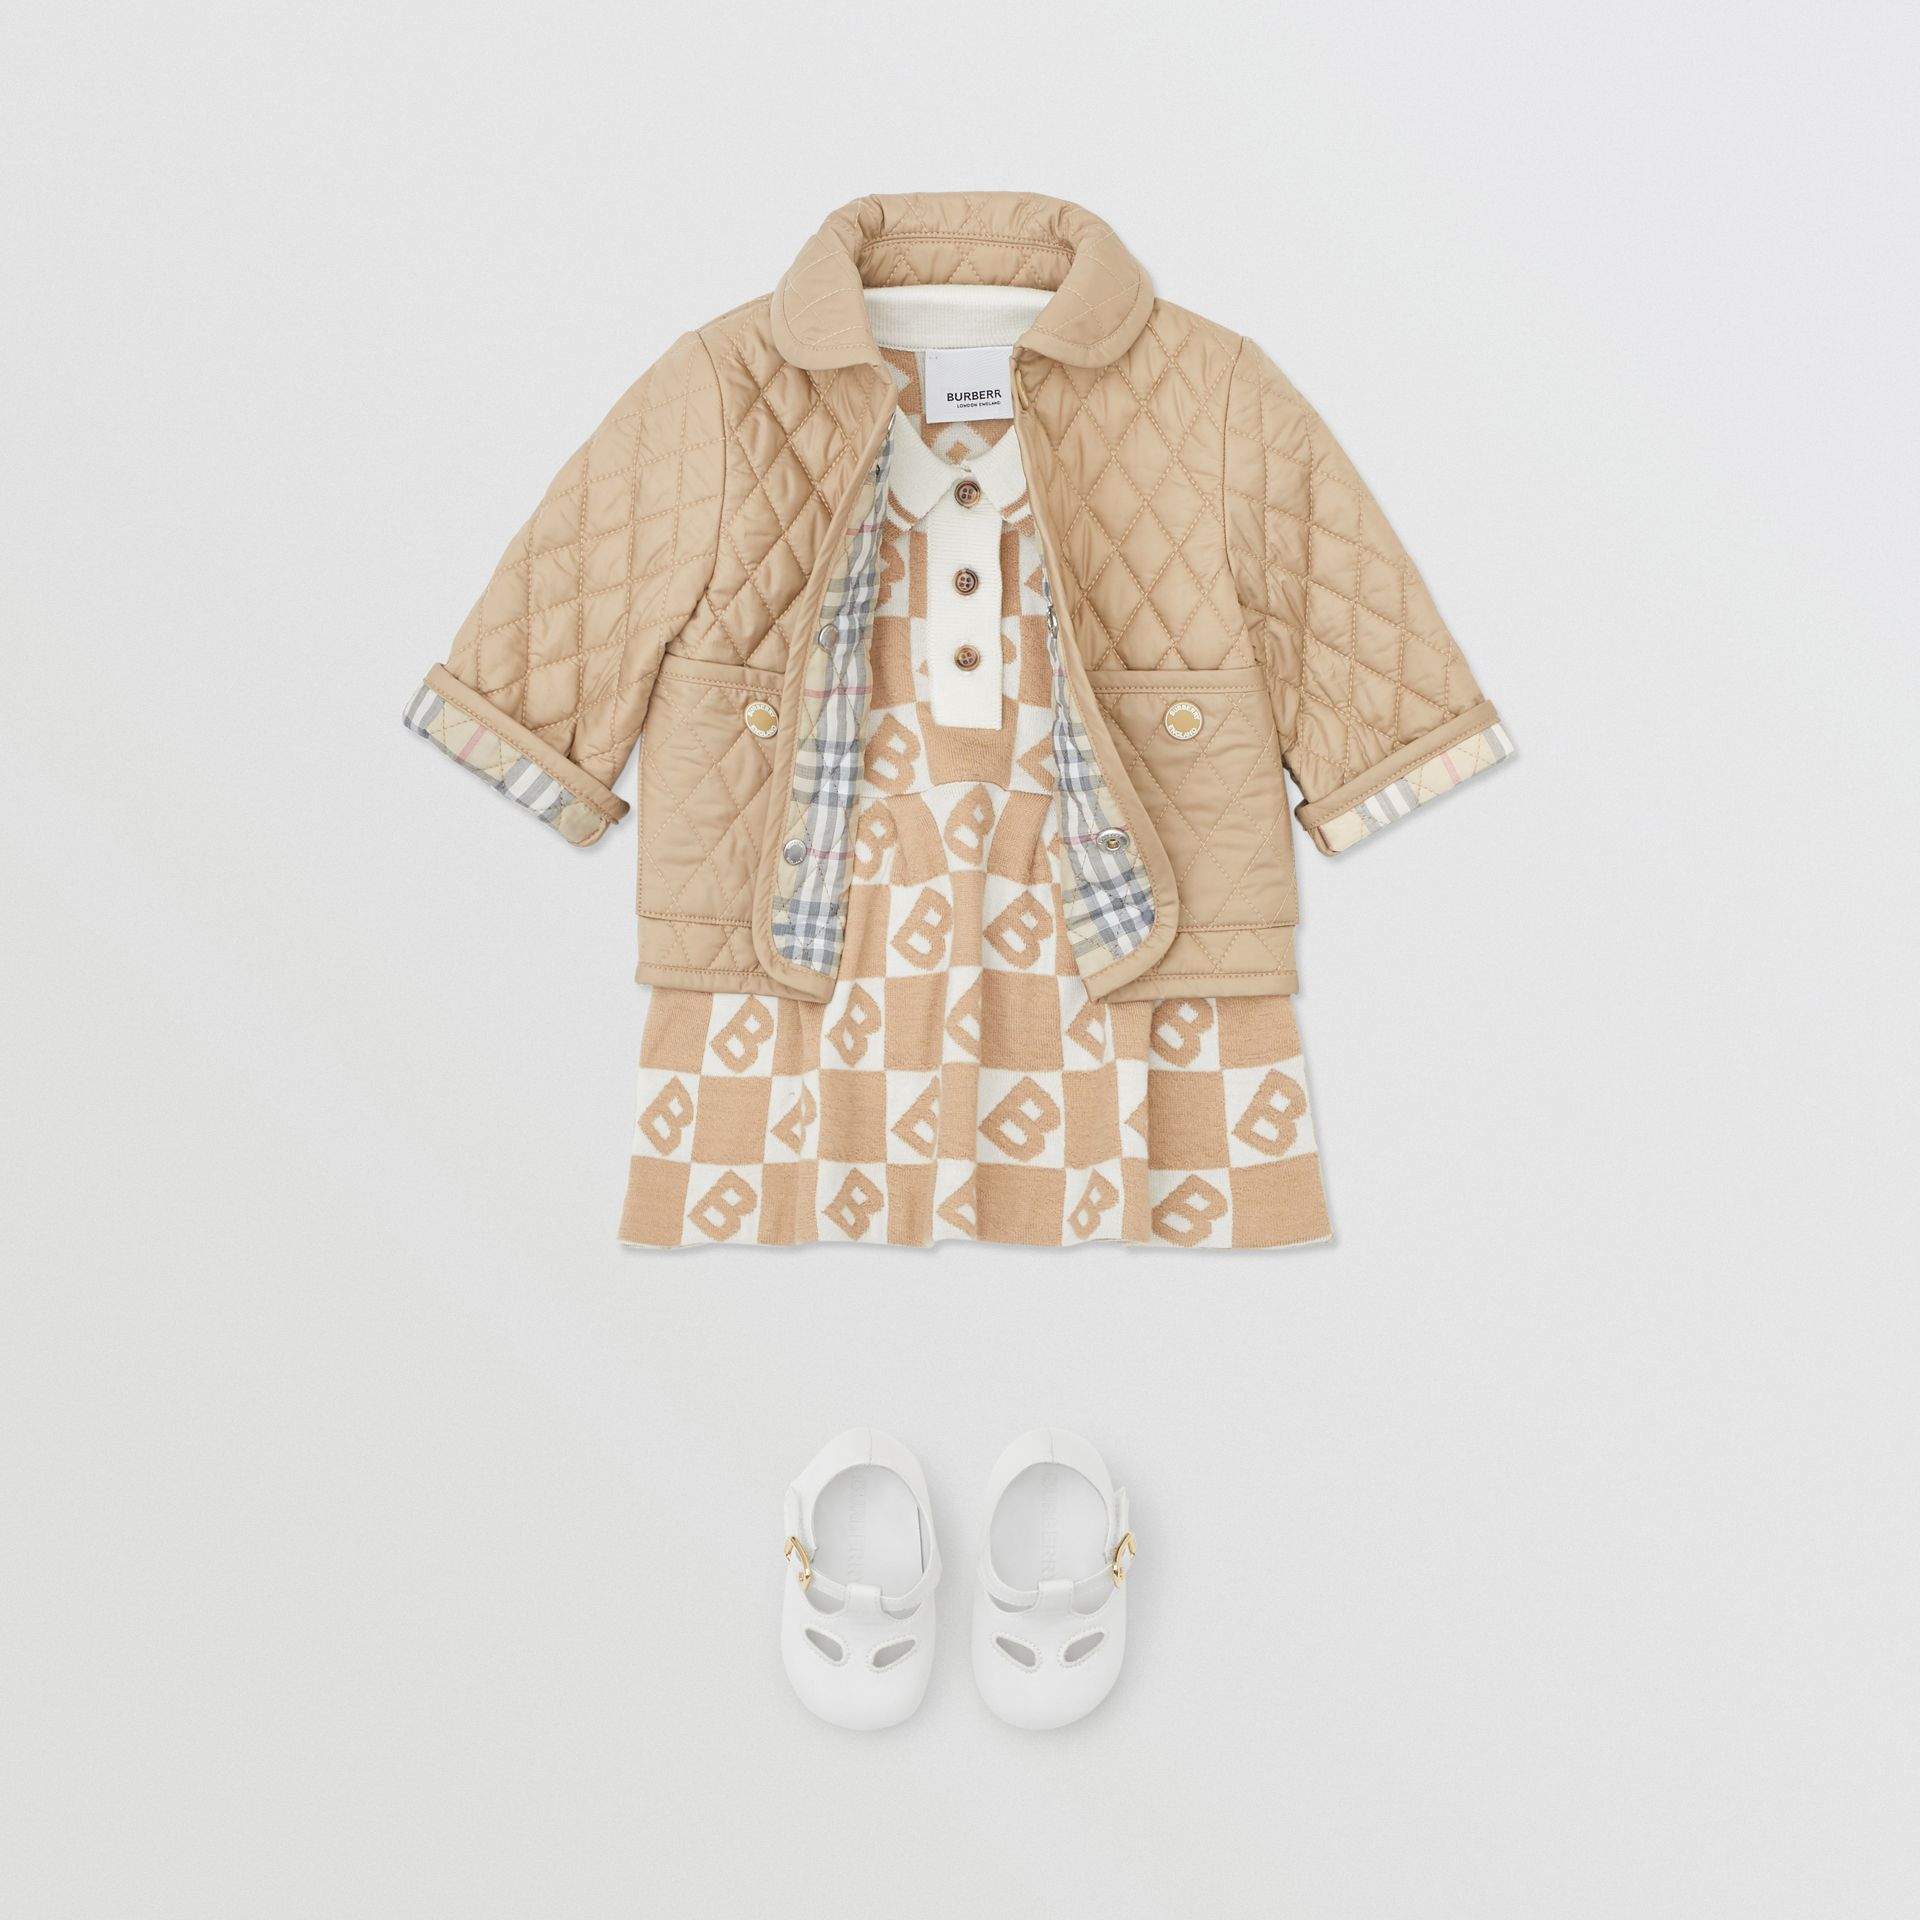 Showerproof Diamond Quilted Jacket in Walnut - Children | Burberry Hong Kong S.A.R - gallery image 2